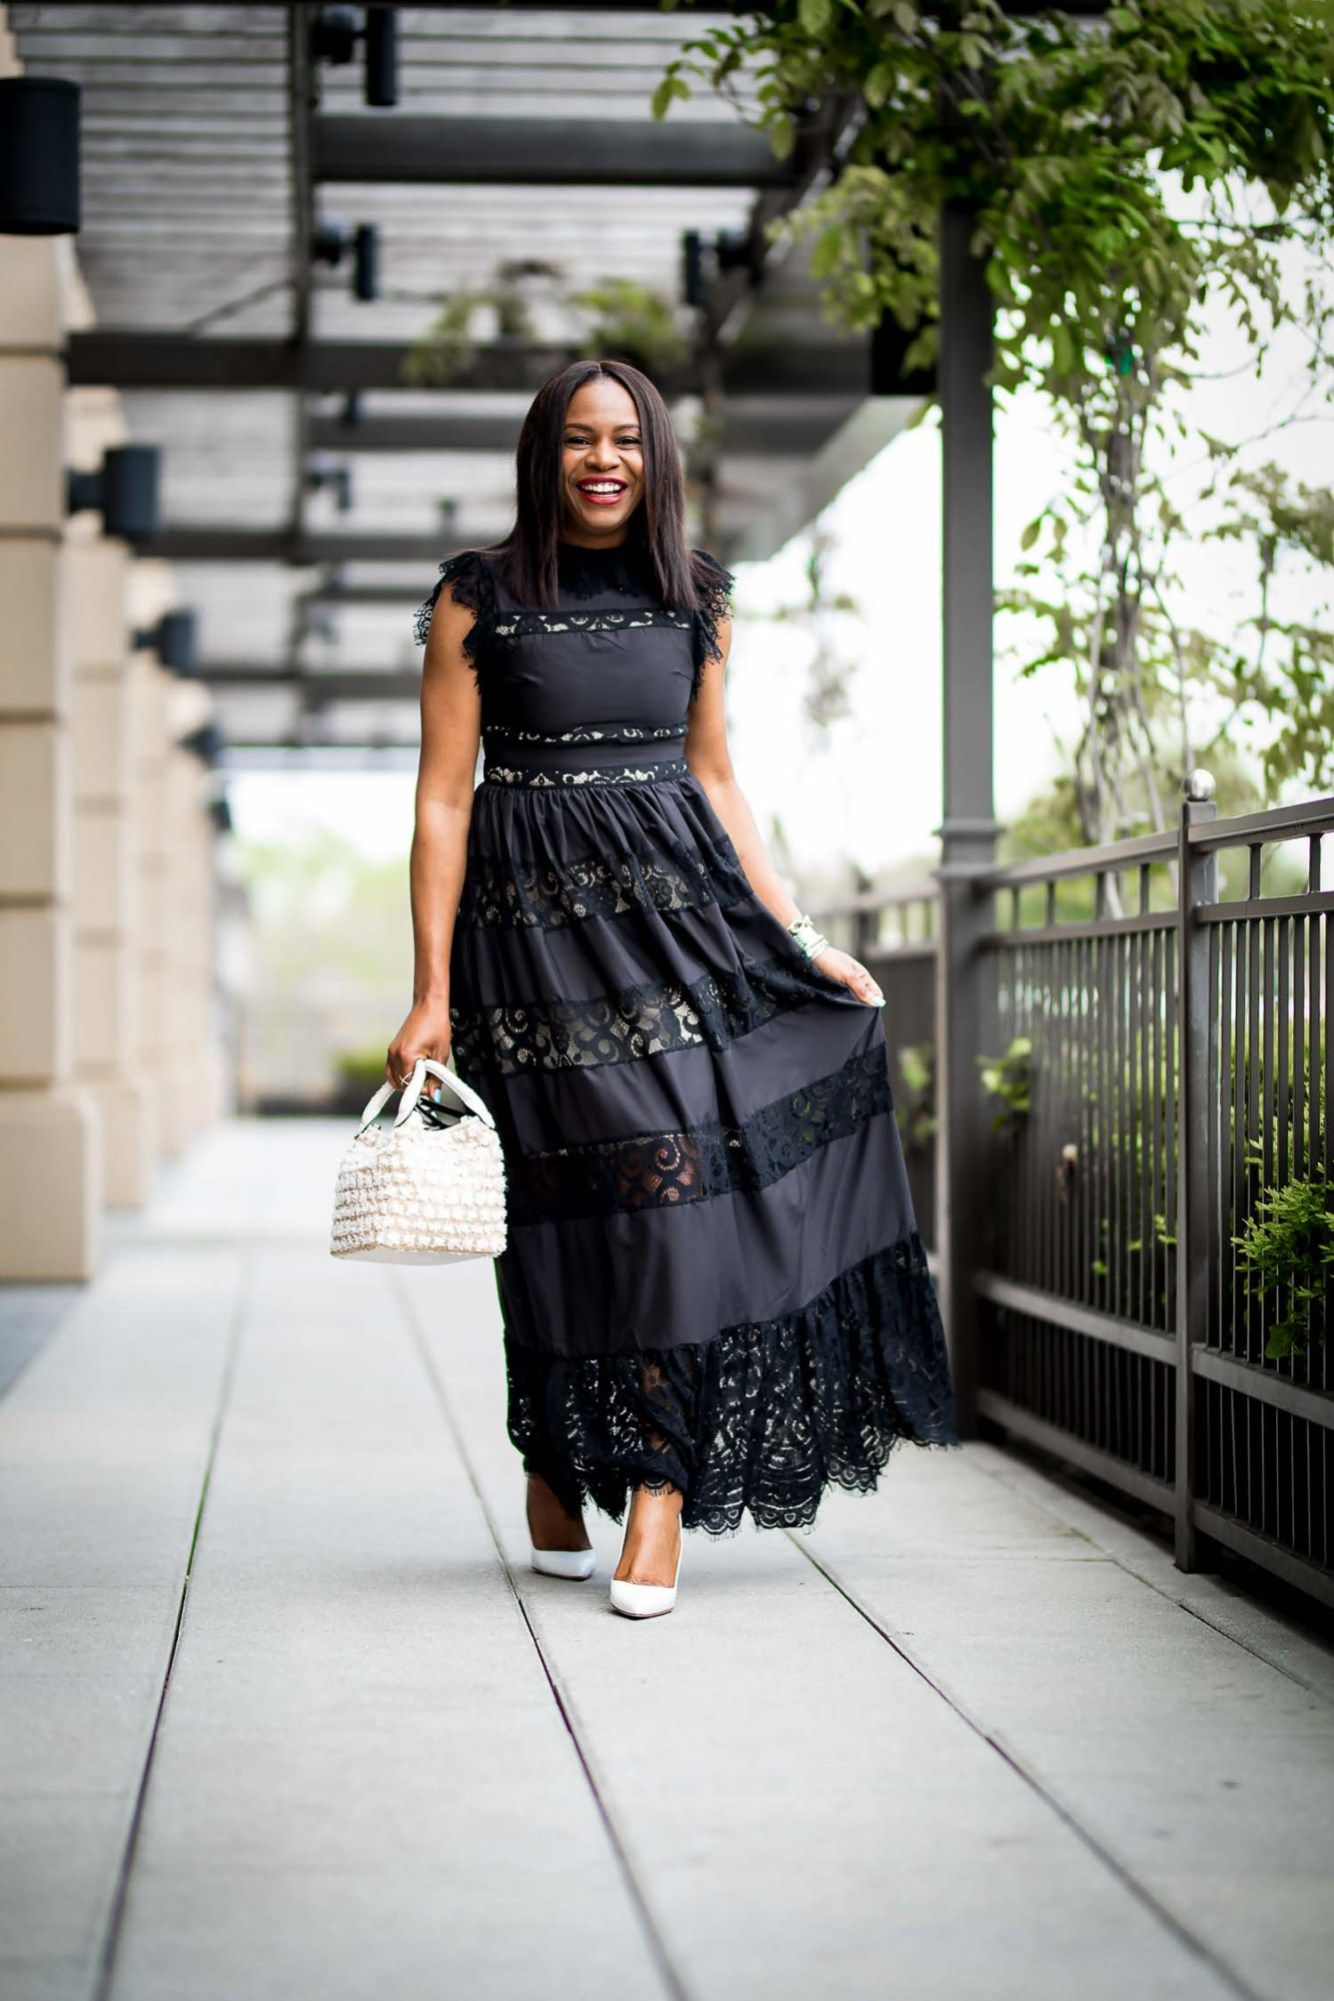 How To Style A Black Dress For Summer 3 Dresses Wear Black Dresses Summer Dresses [ 2001 x 1334 Pixel ]